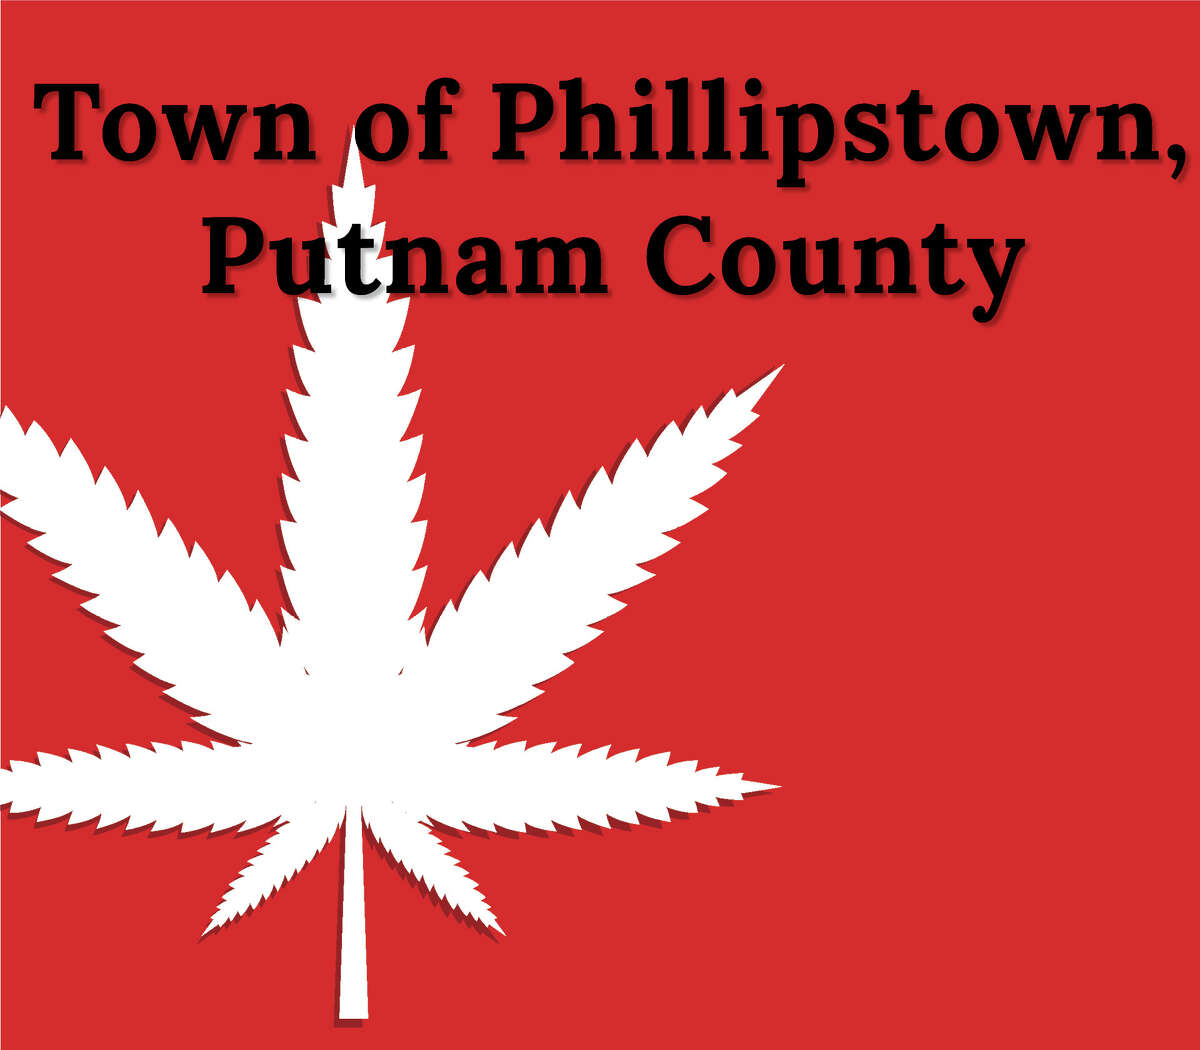 ThePhilipstown Town Board has begun initial discussions on whether or not the town will opt-out. During the July 14 town board workshop meeting, two members declared their support for opting out. Other members expressed they would need further research and public input before making a decision.